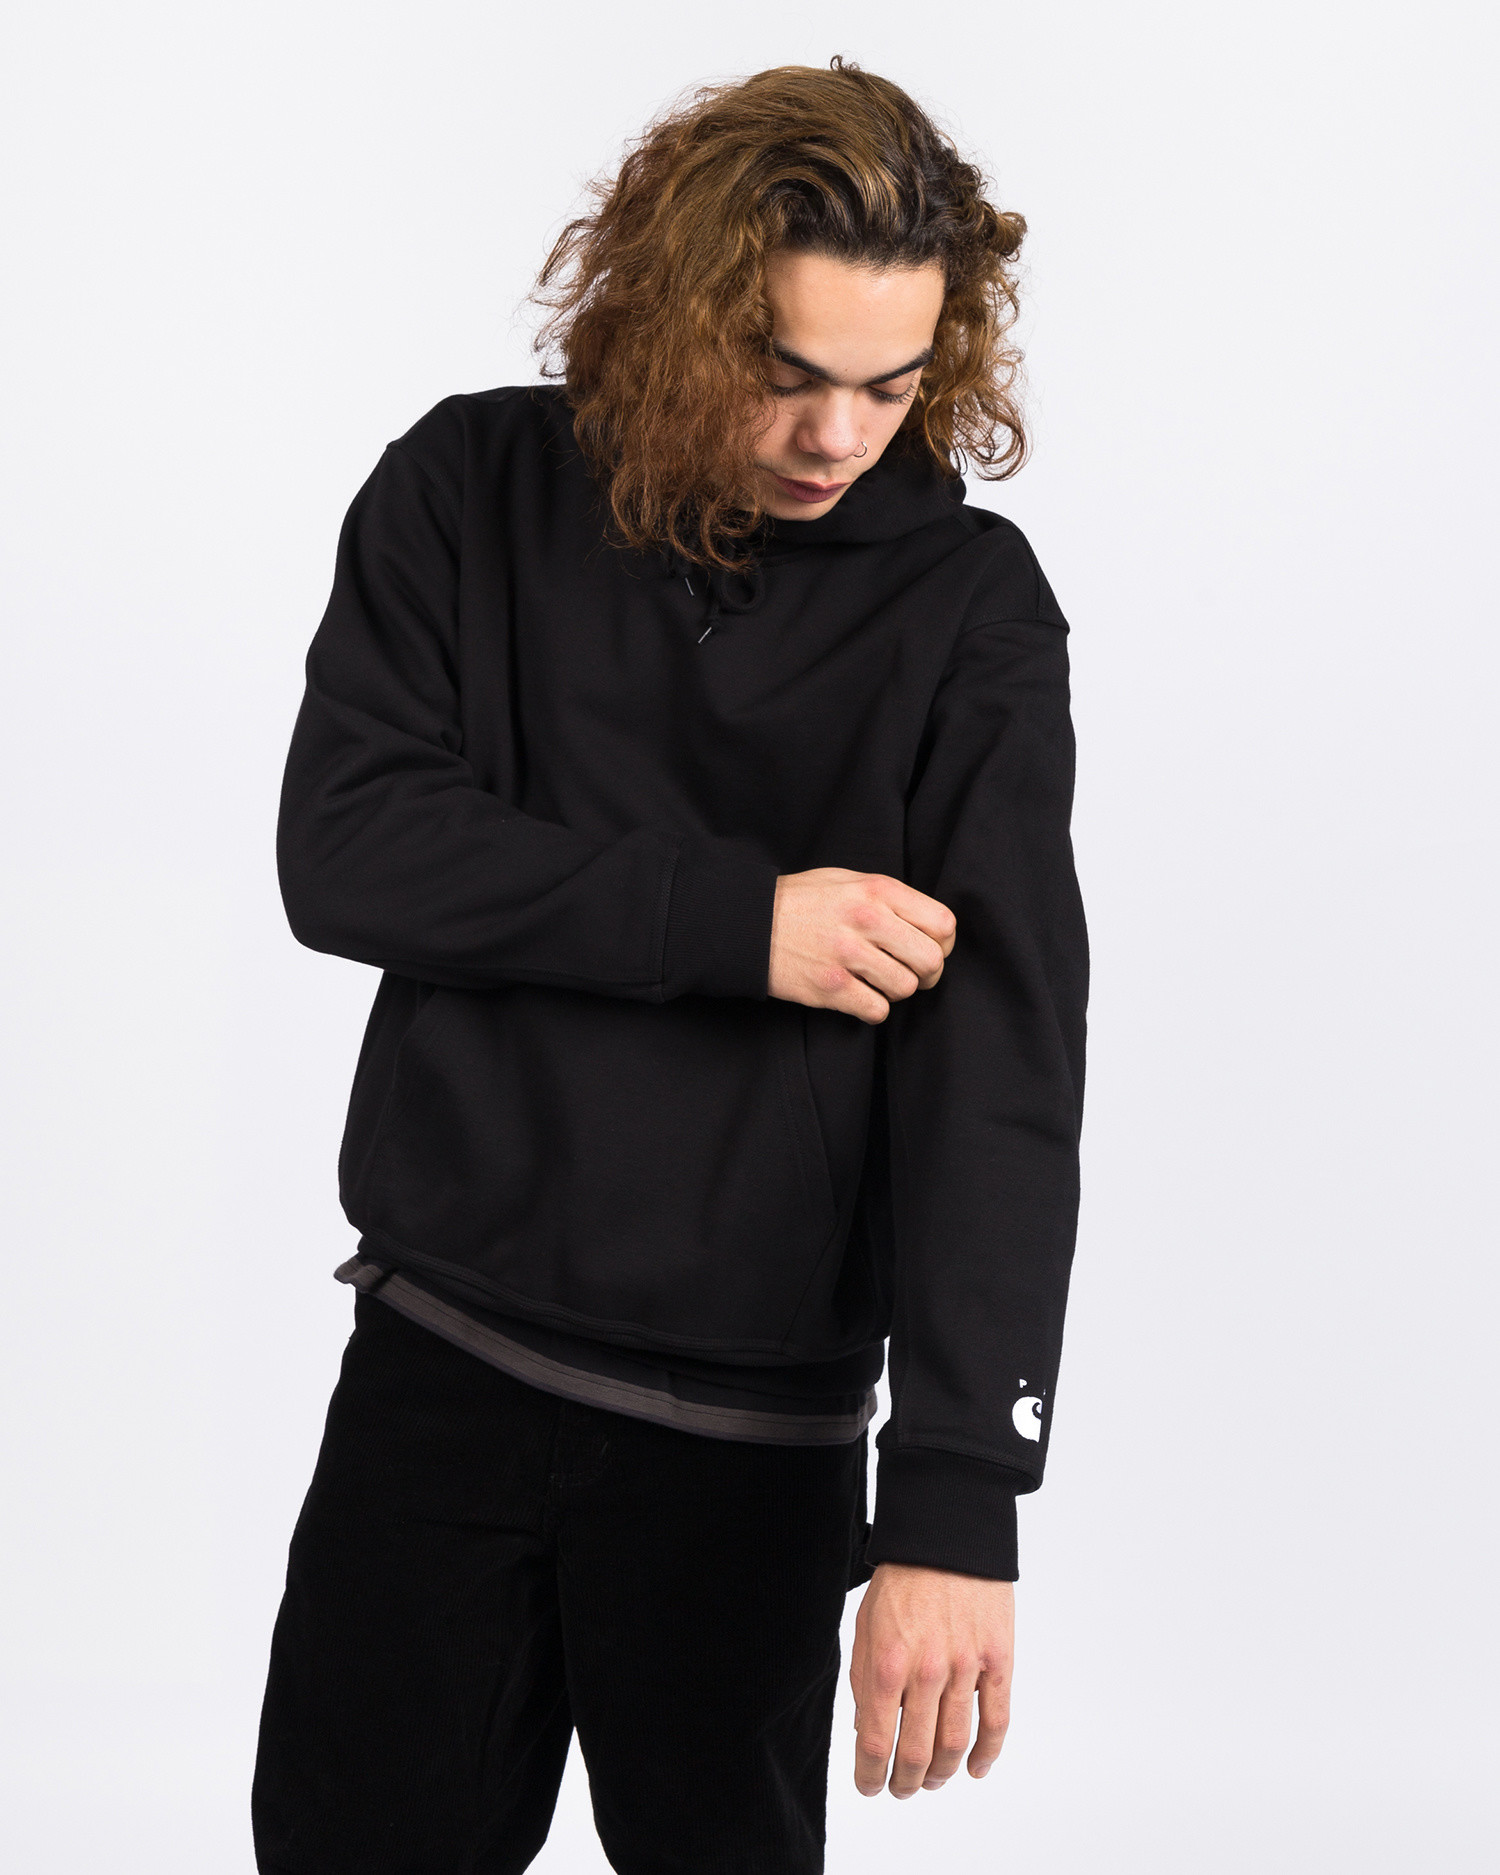 Carhartt x Pop Trading Co HD Sweater Black